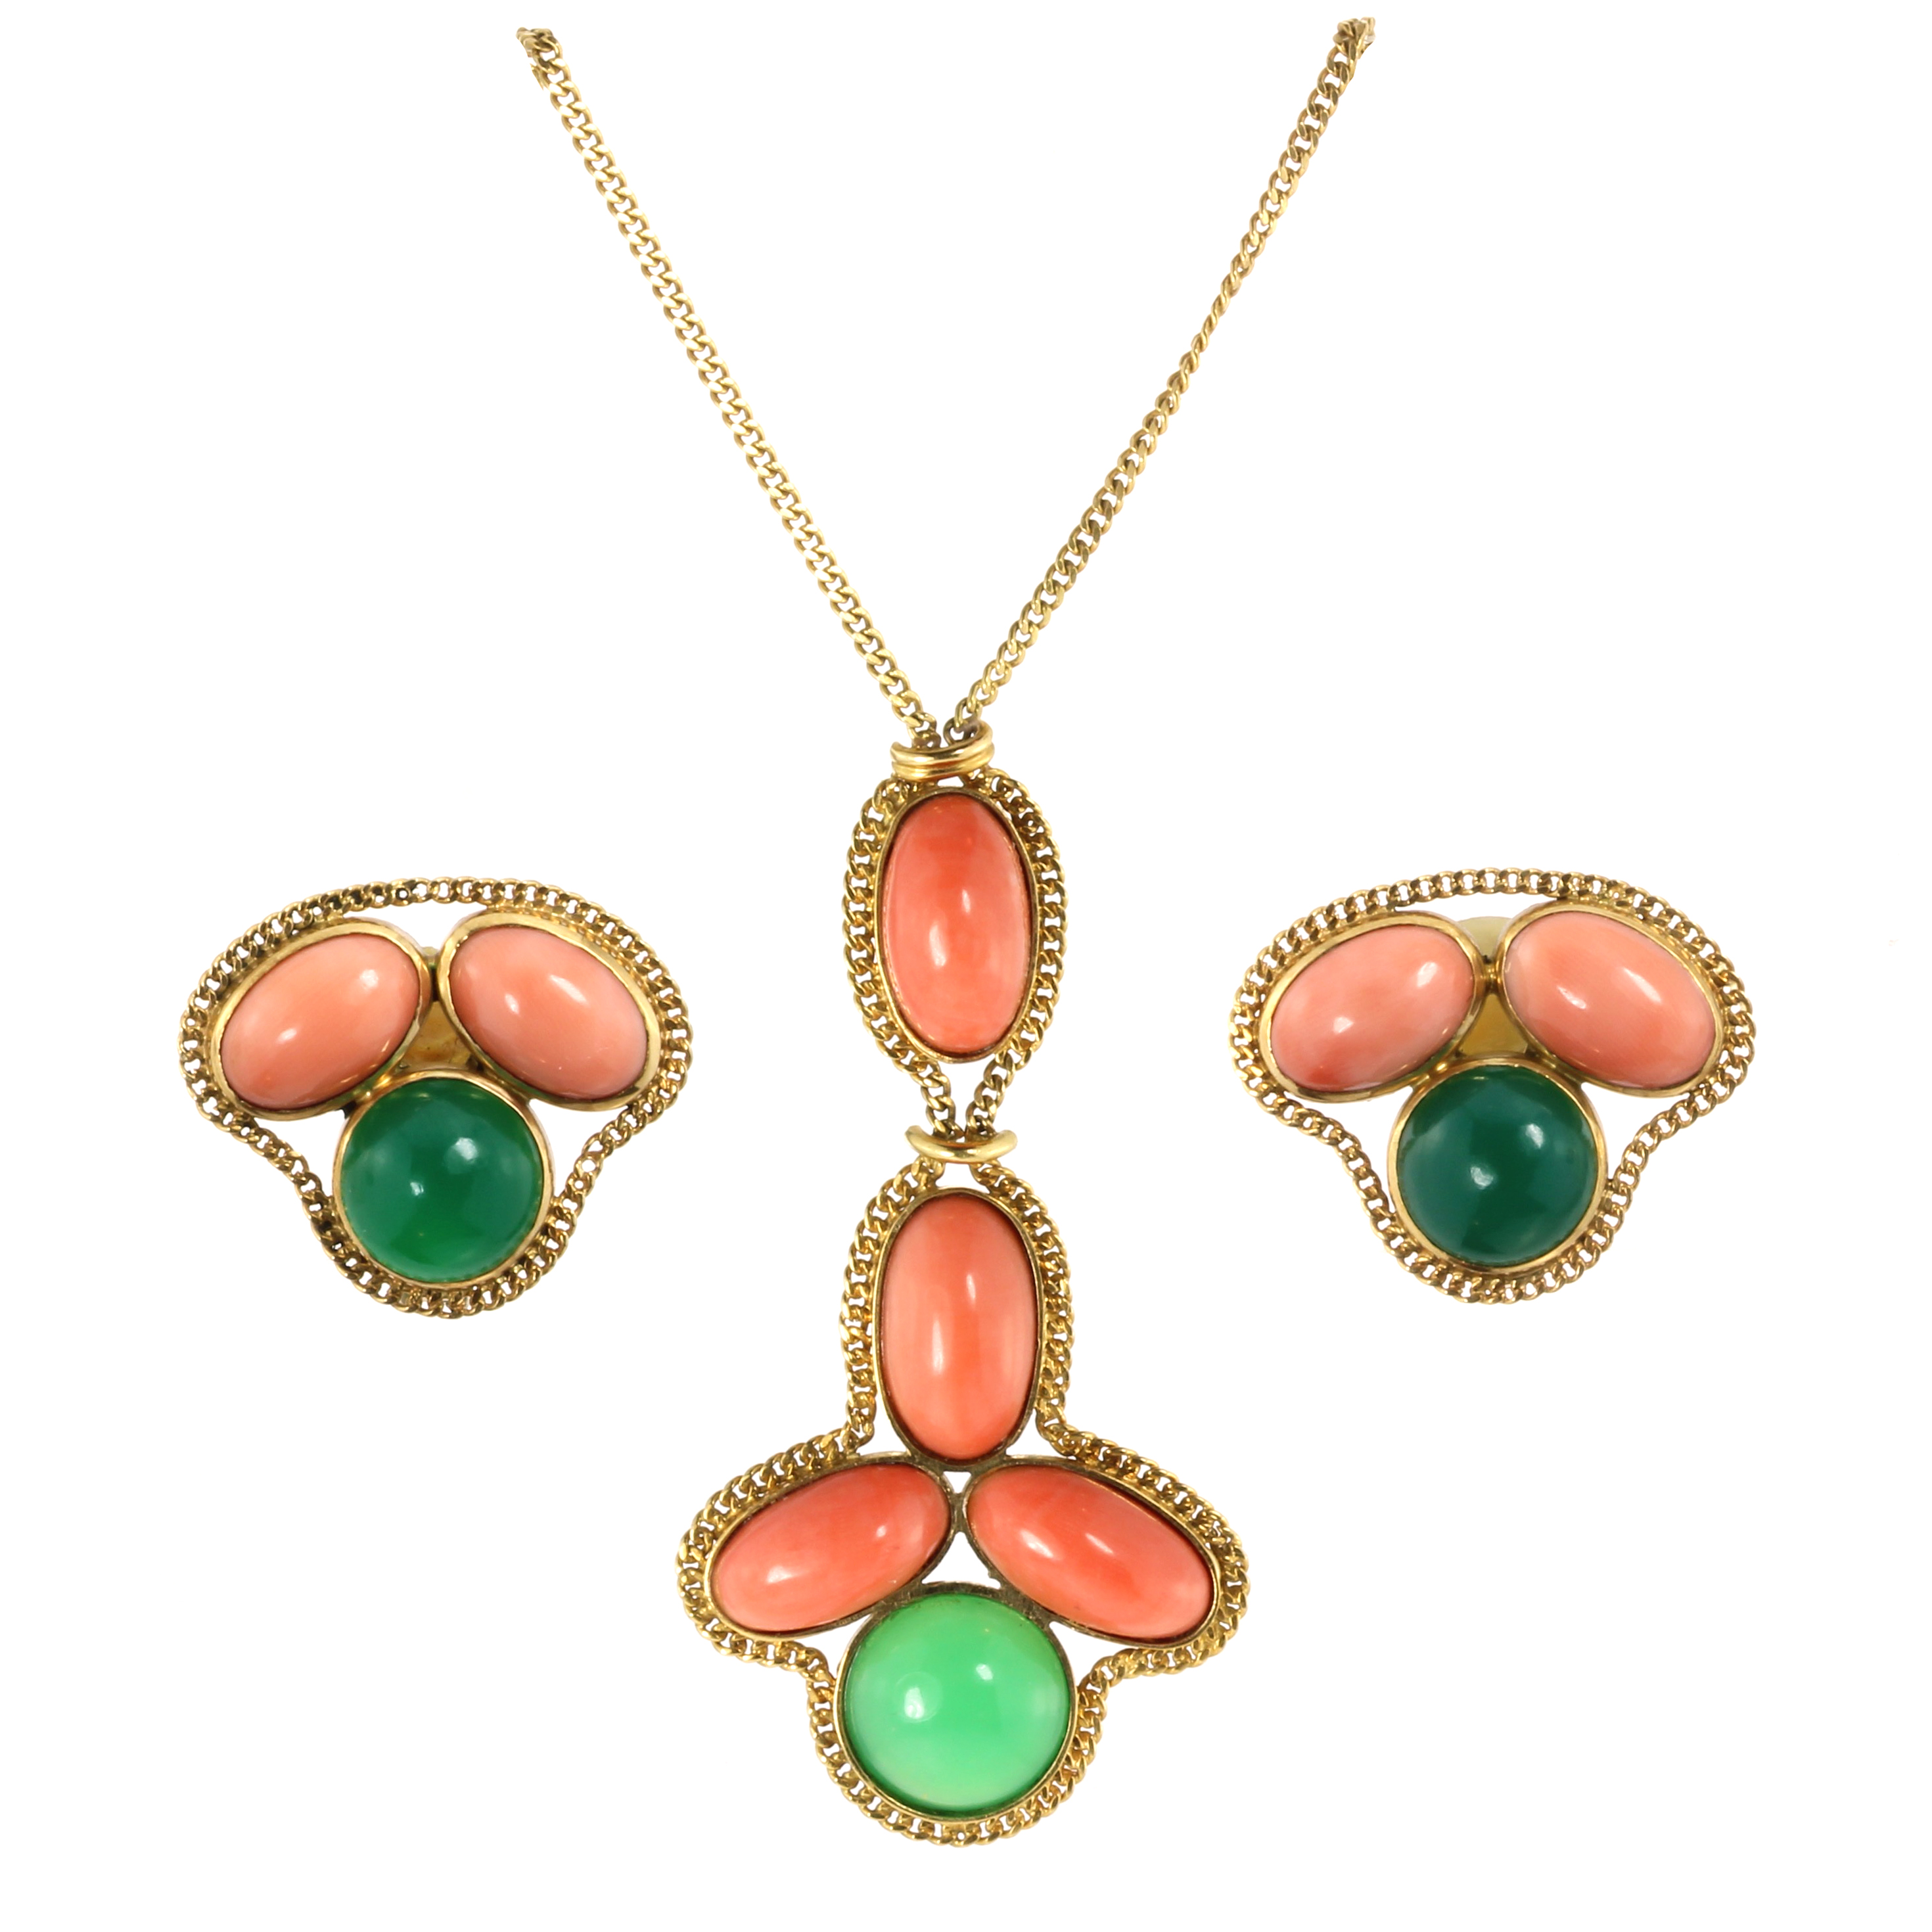 Los 7 - A CORAL AND JADEITE JADE NECKLACE AND CLIP EARRING SUITE each with cabochon coral and jade stones